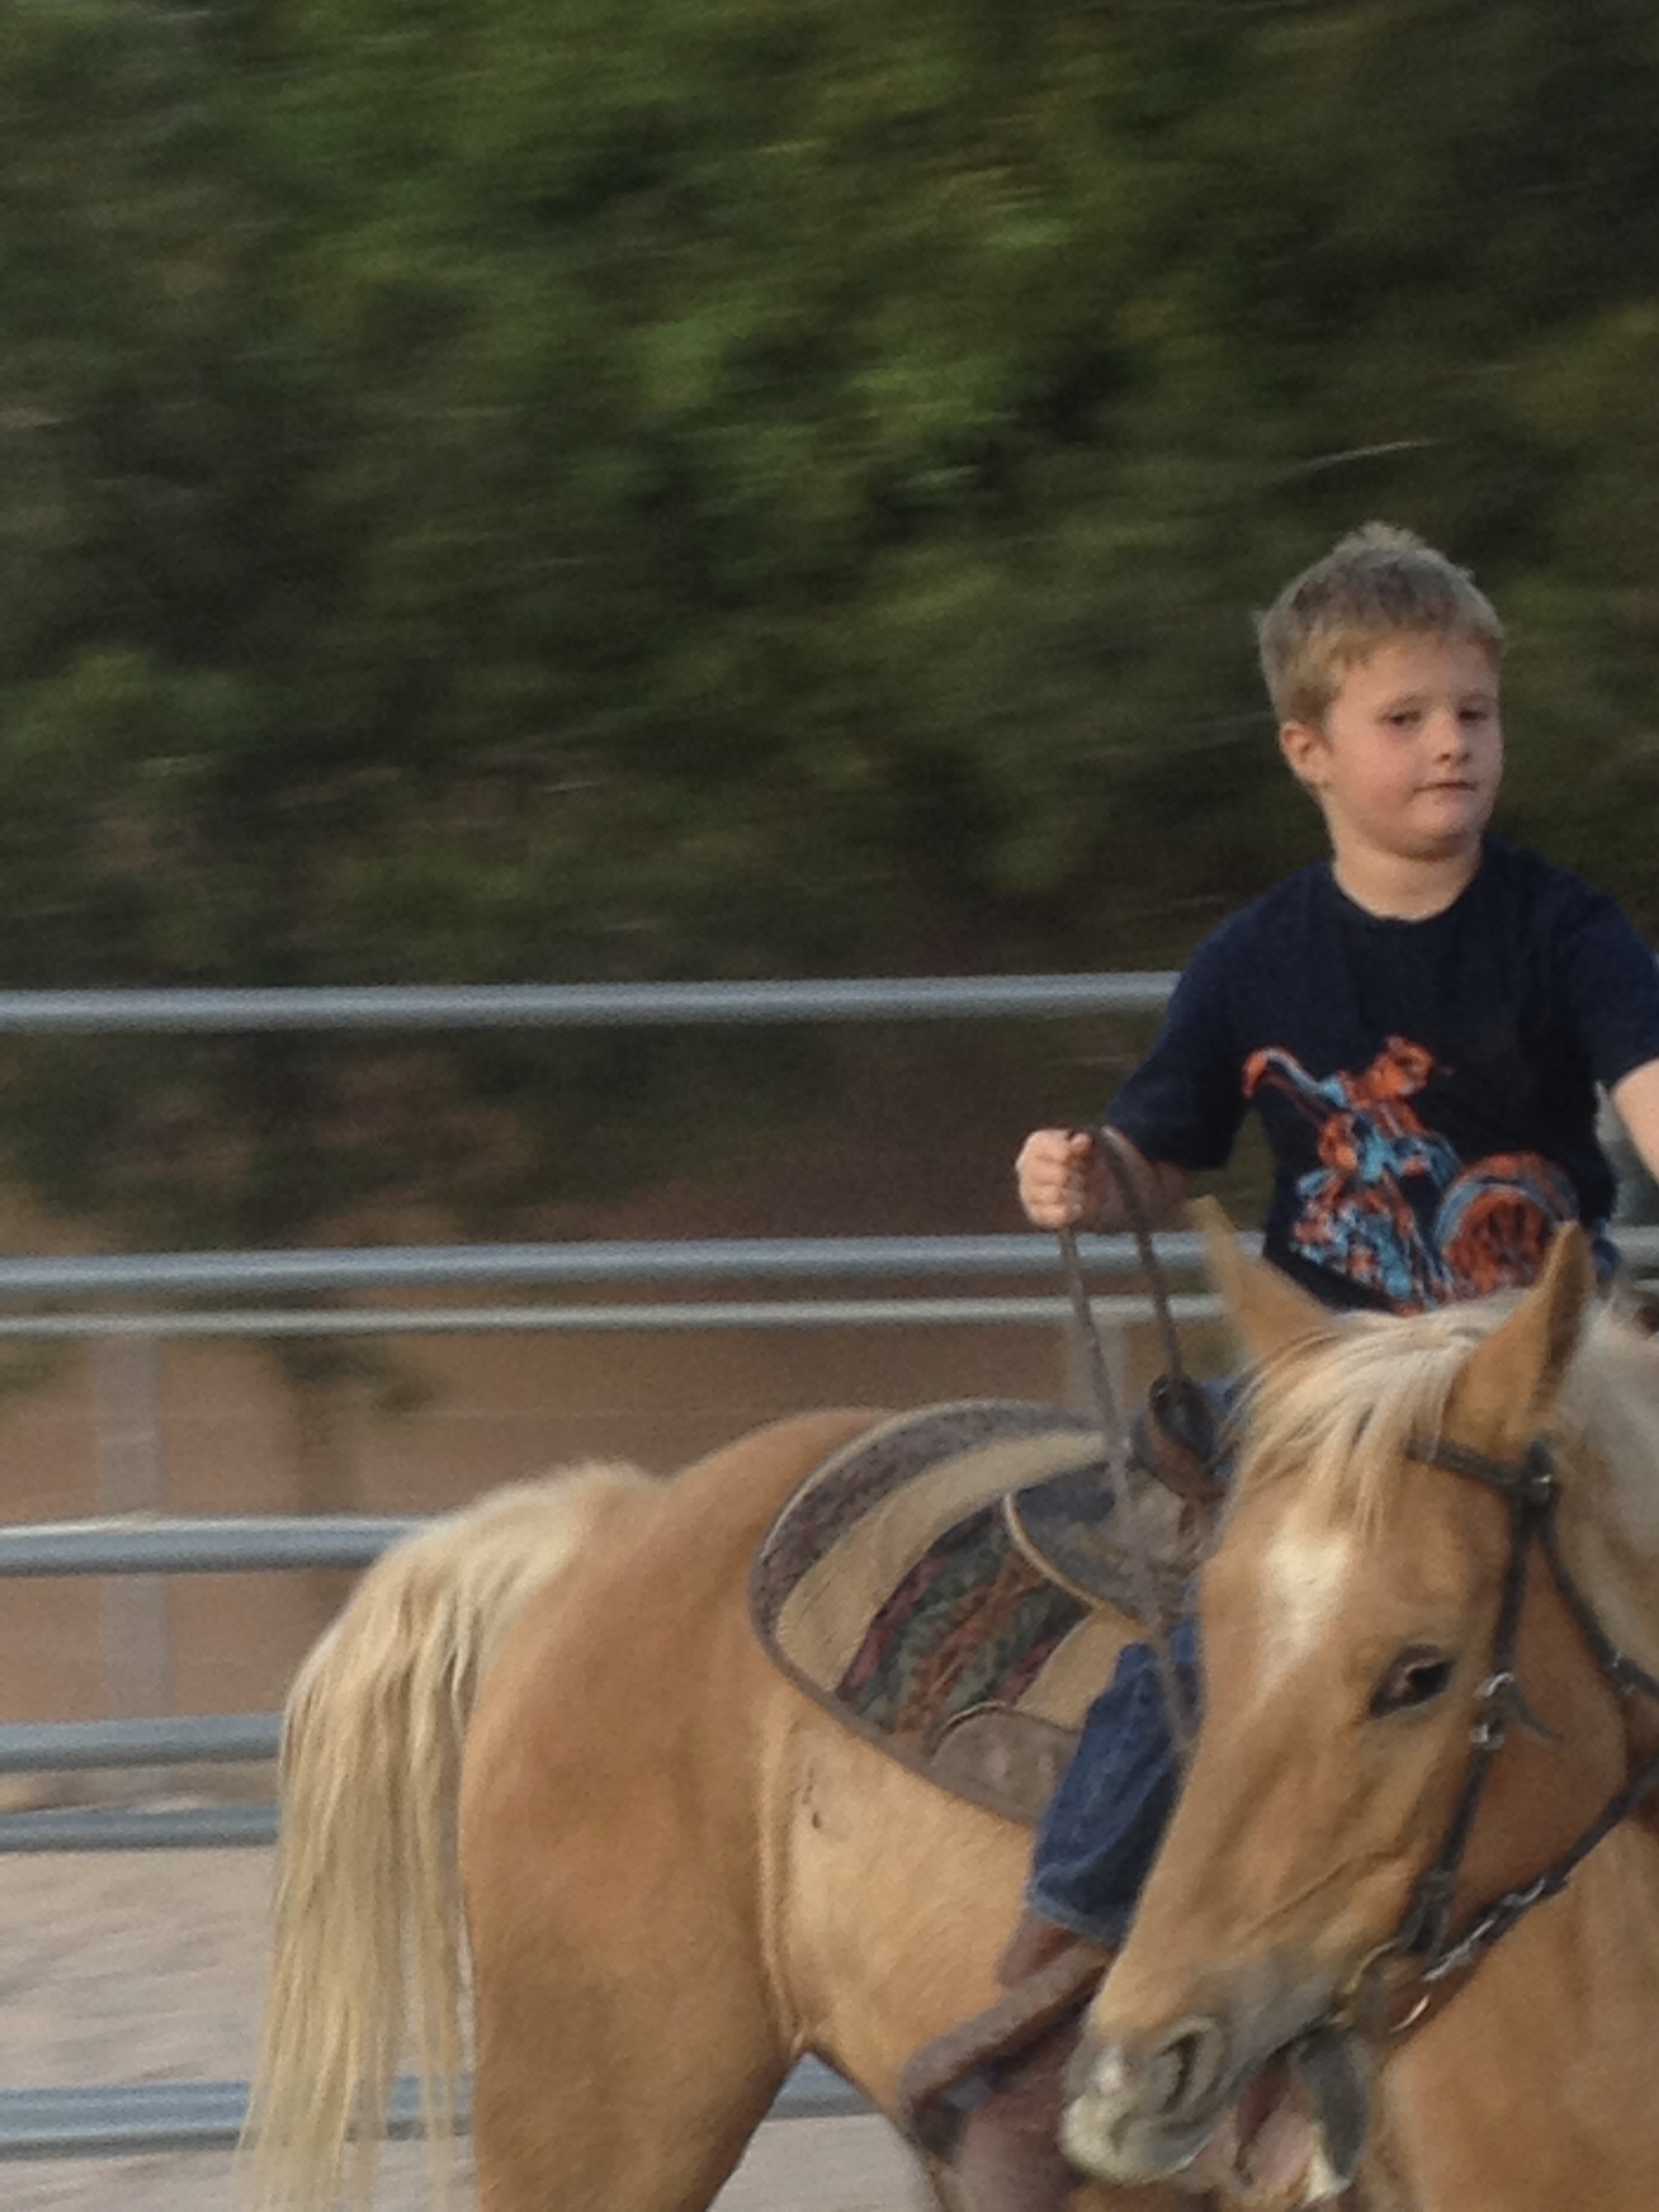 Gary Fales' son Jacob Fales riding Coco Motion the horse